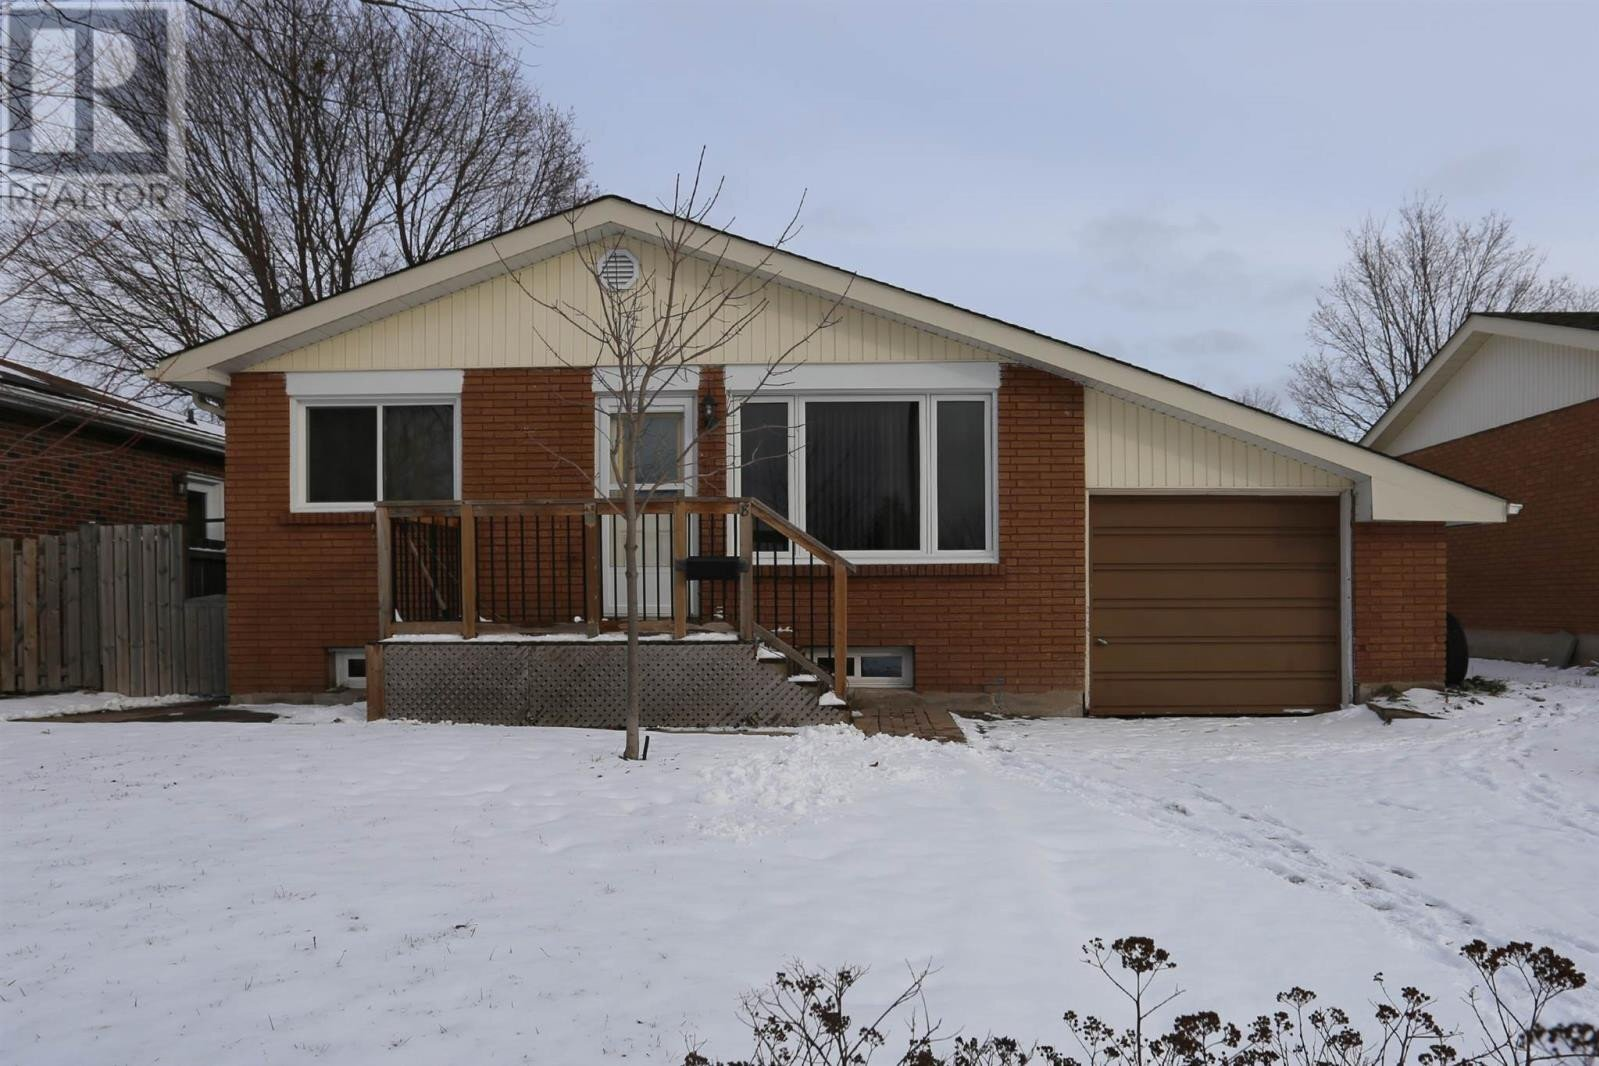 House for sale at 8 Durban Rd Sault Ste. Marie Ontario - MLS: SM130329